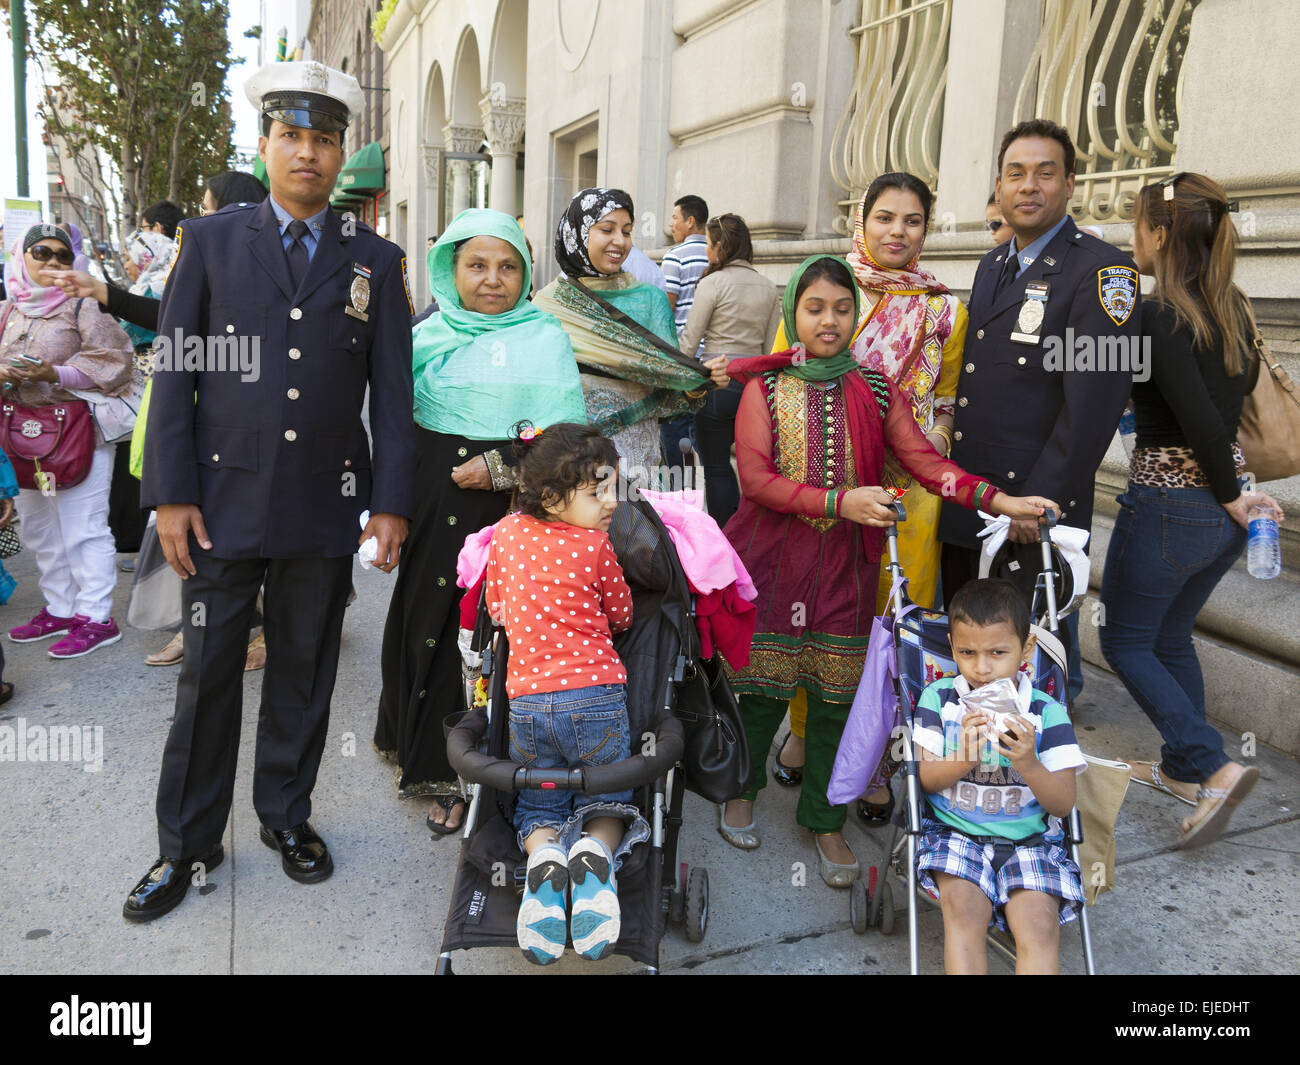 Muslim NYPD police officers and their families at the Muslim American Day Parade n New York City, 2014. Stock Photo